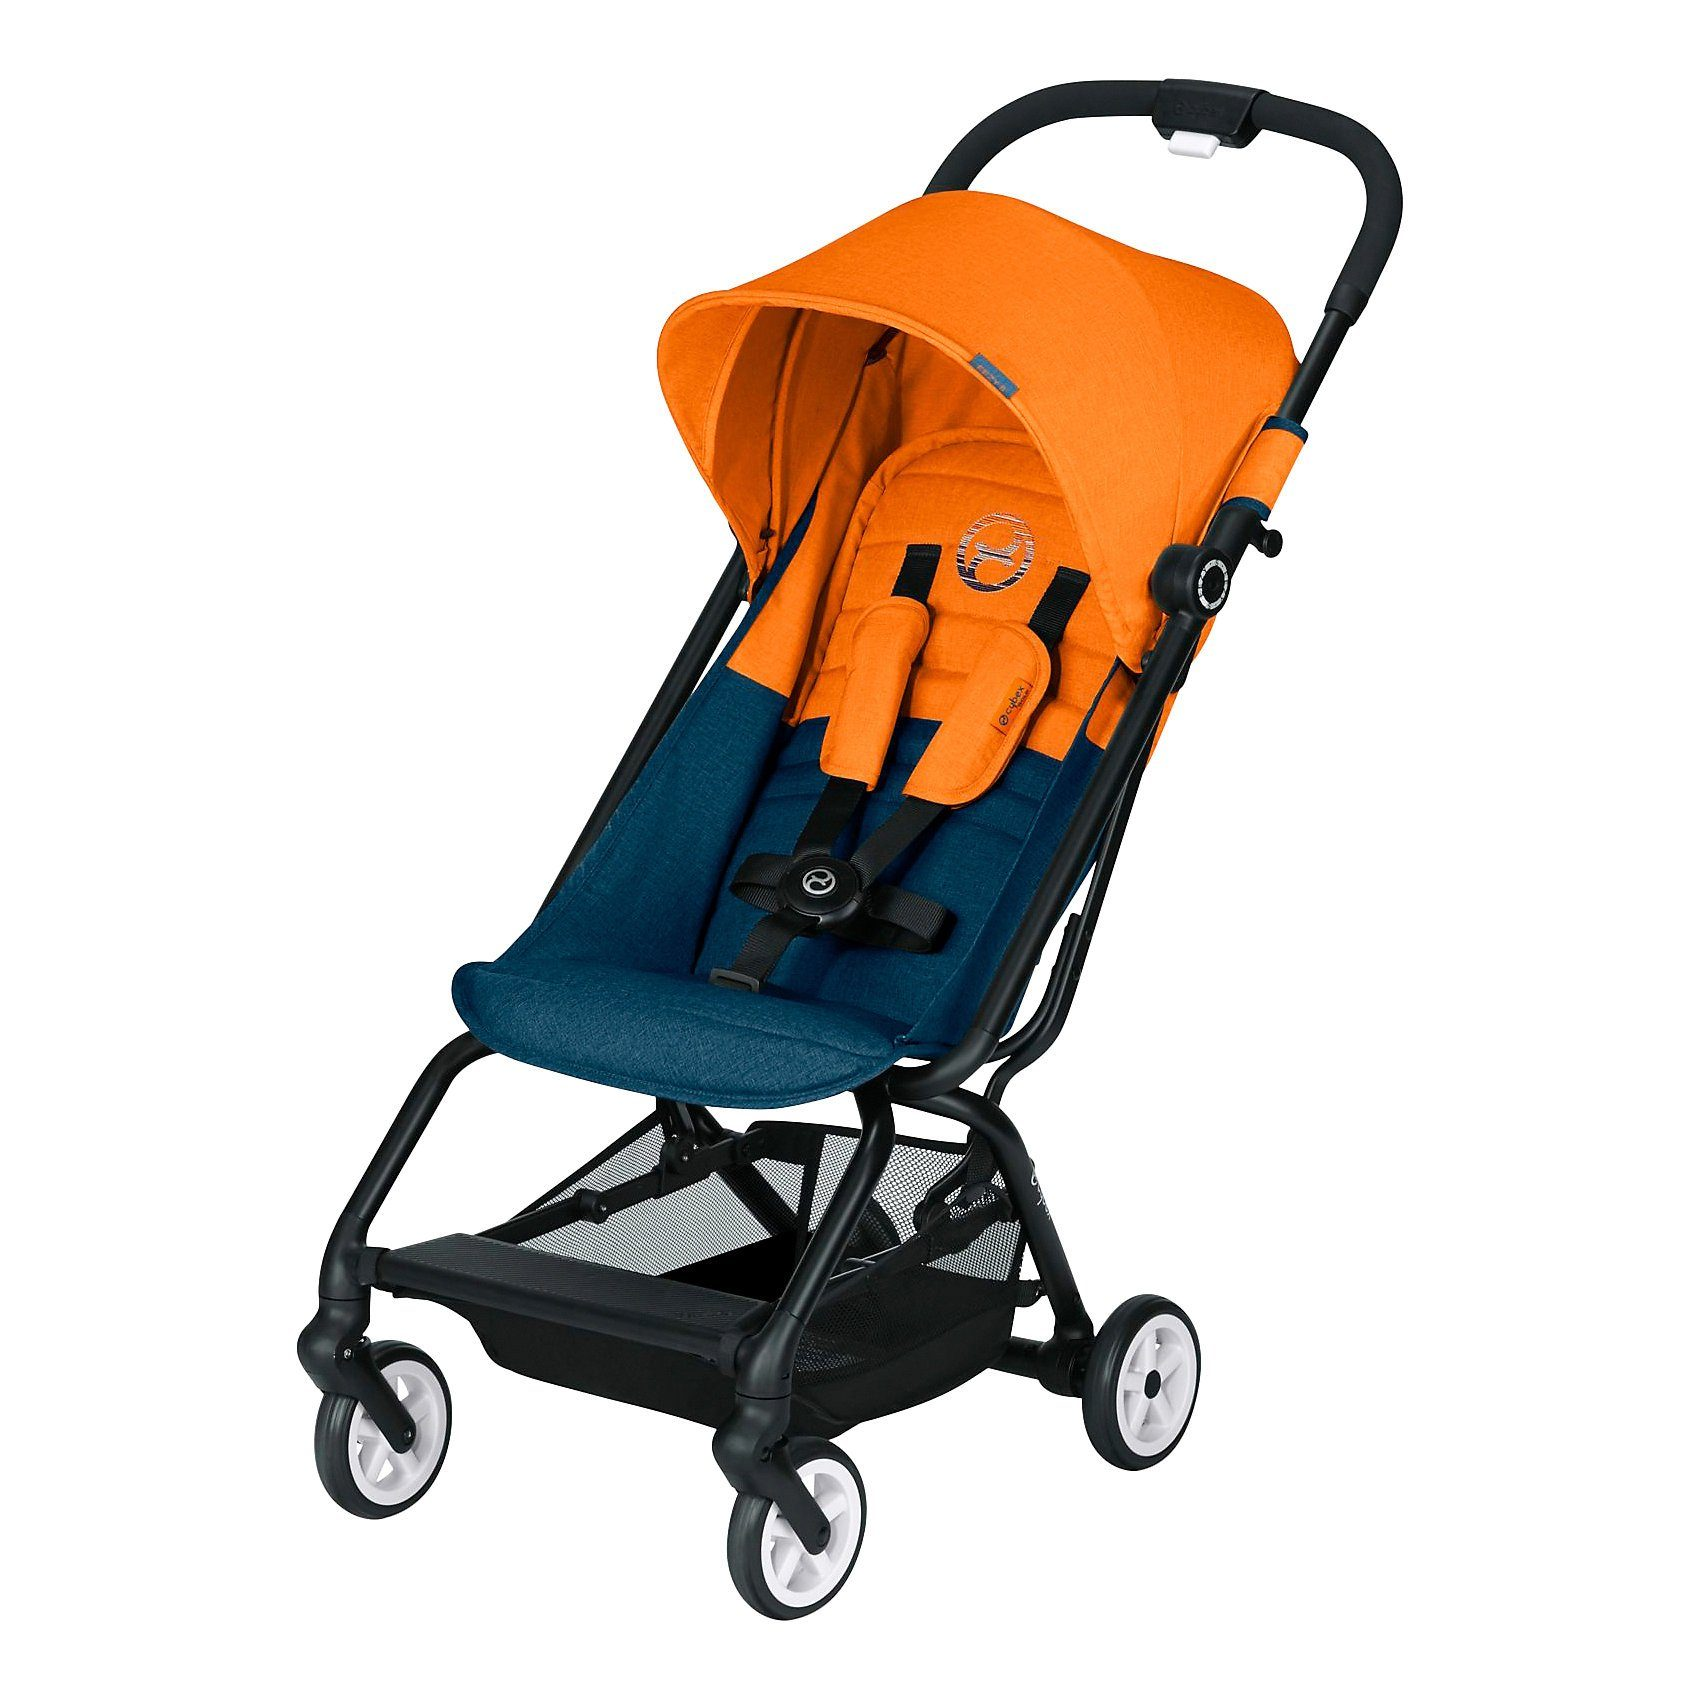 Cybex Buggy Eezy S, Gold-Line, Tropical Blue, 2019